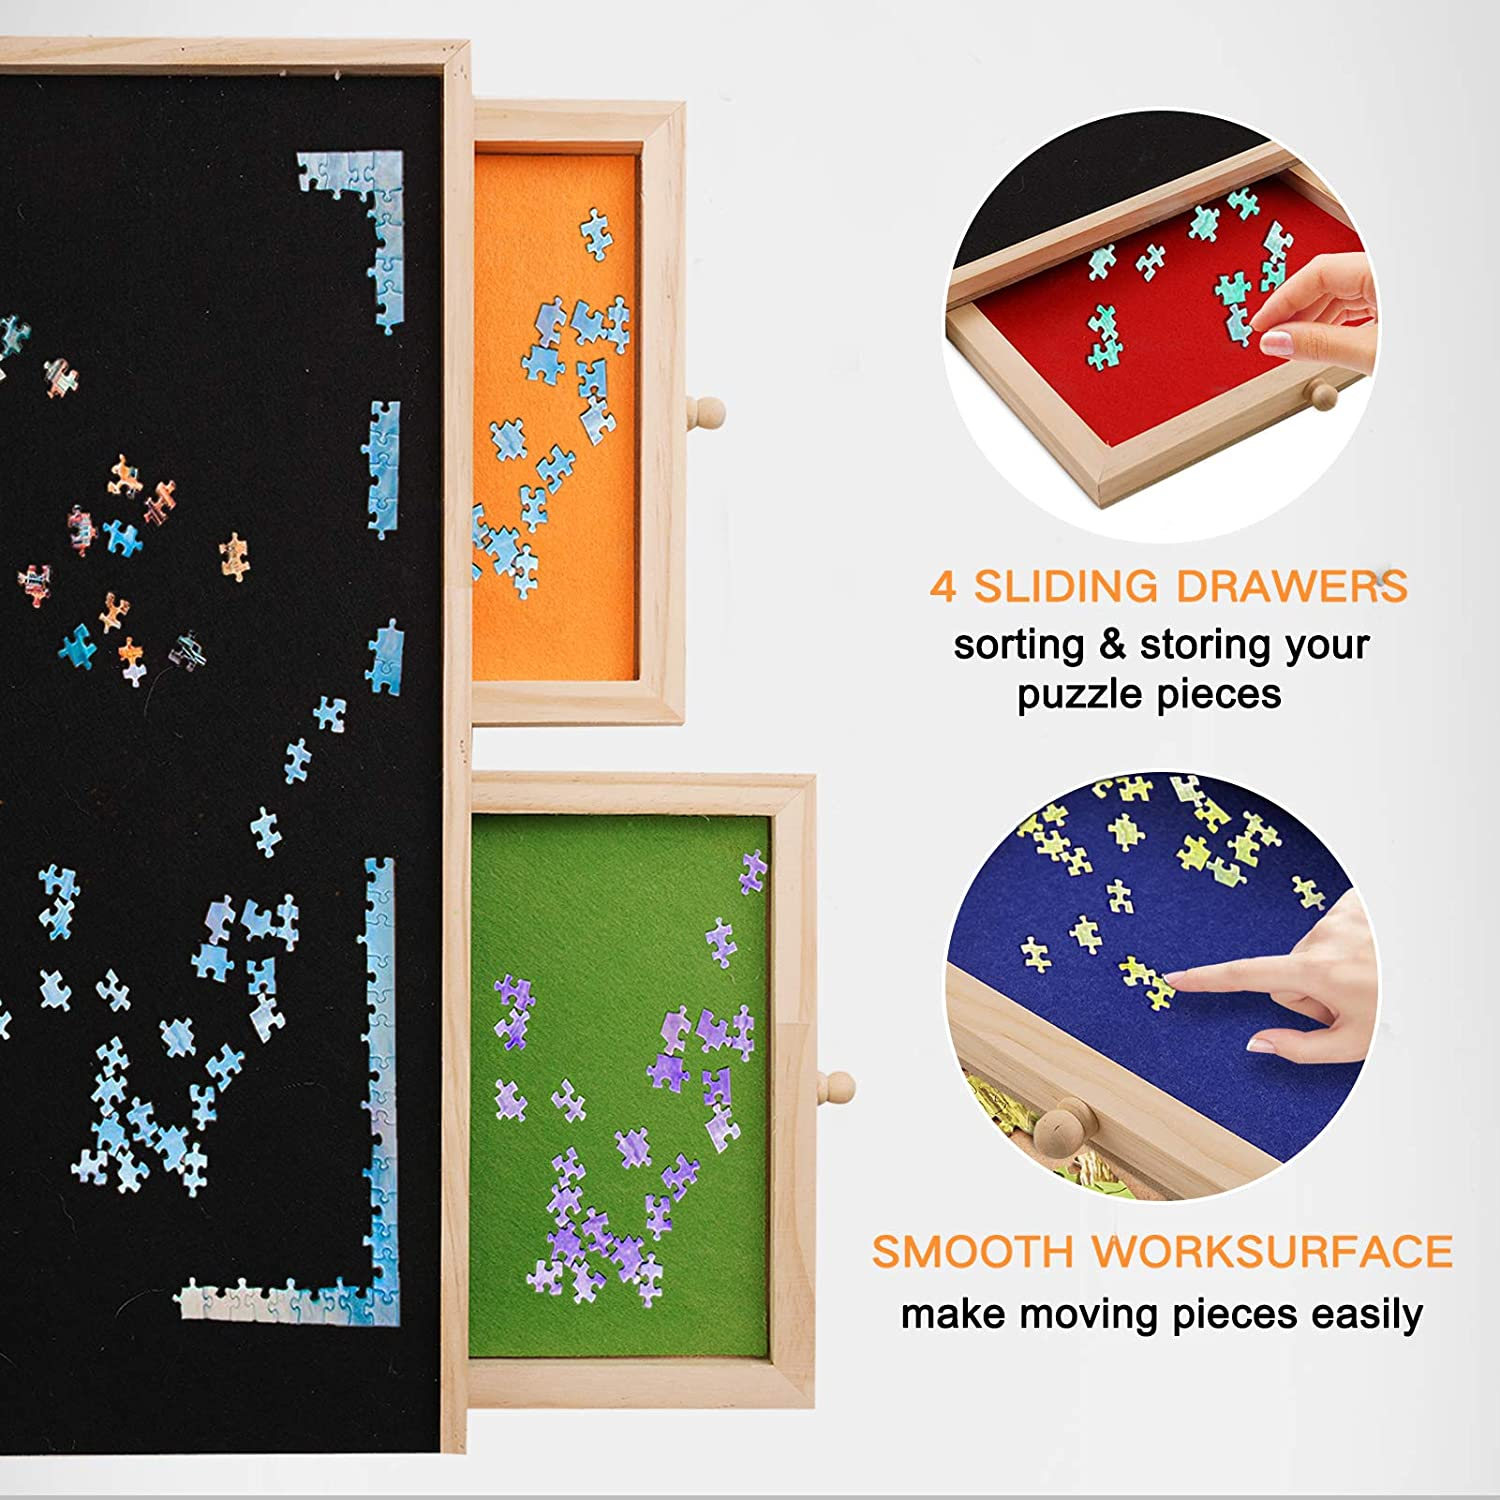 Wooden Puzzle Board for 1000 Piece Puzzles Puzzle Table with 4 Sliding Drawer Felt Jigsaw Puzzle Storage